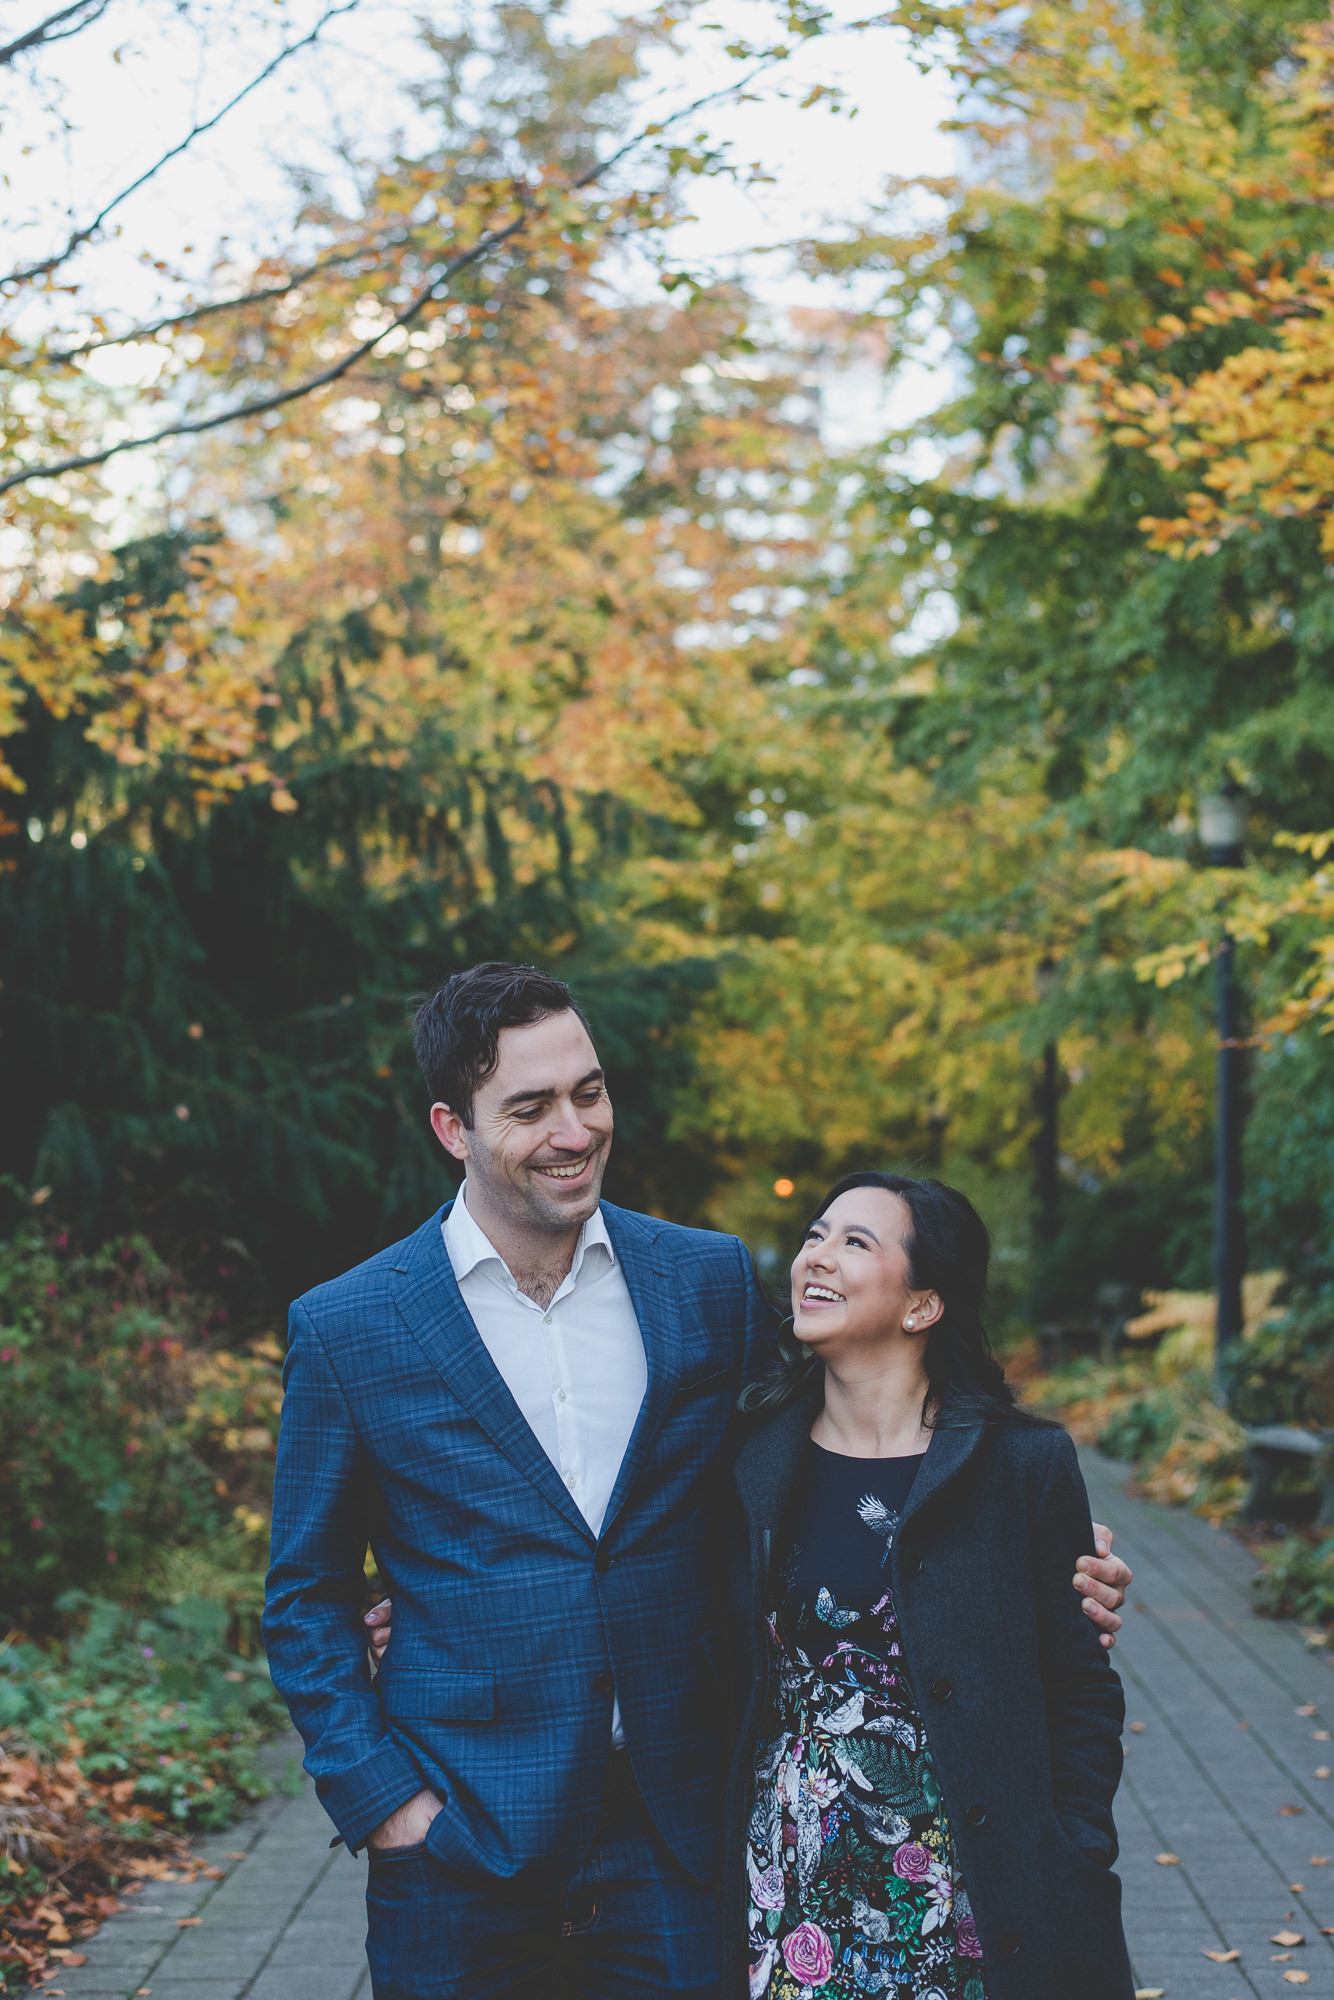 couple laughing together while walking between autumn trees